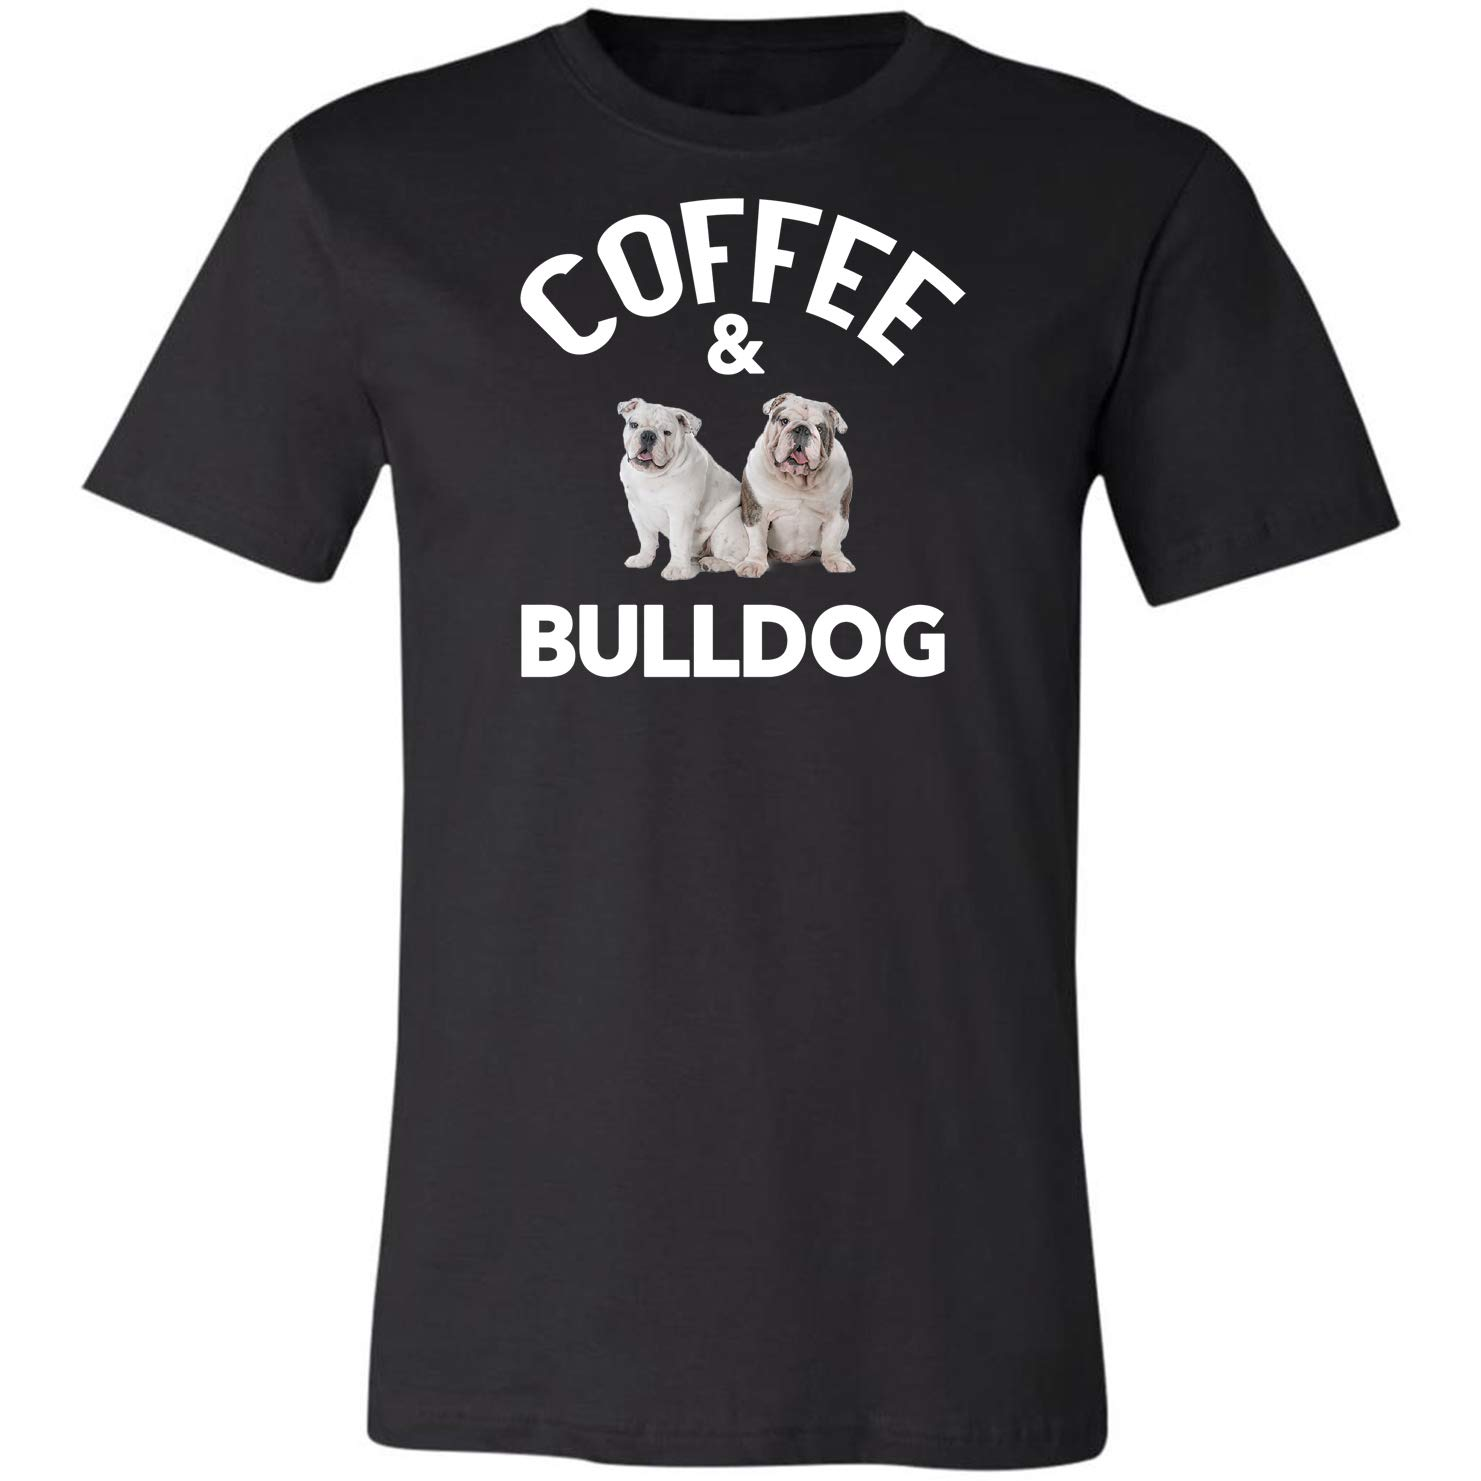 Coffee And Bulldogs Funny Bulldog Dog Saying Gifts Idea For Pet Lover Tshirt